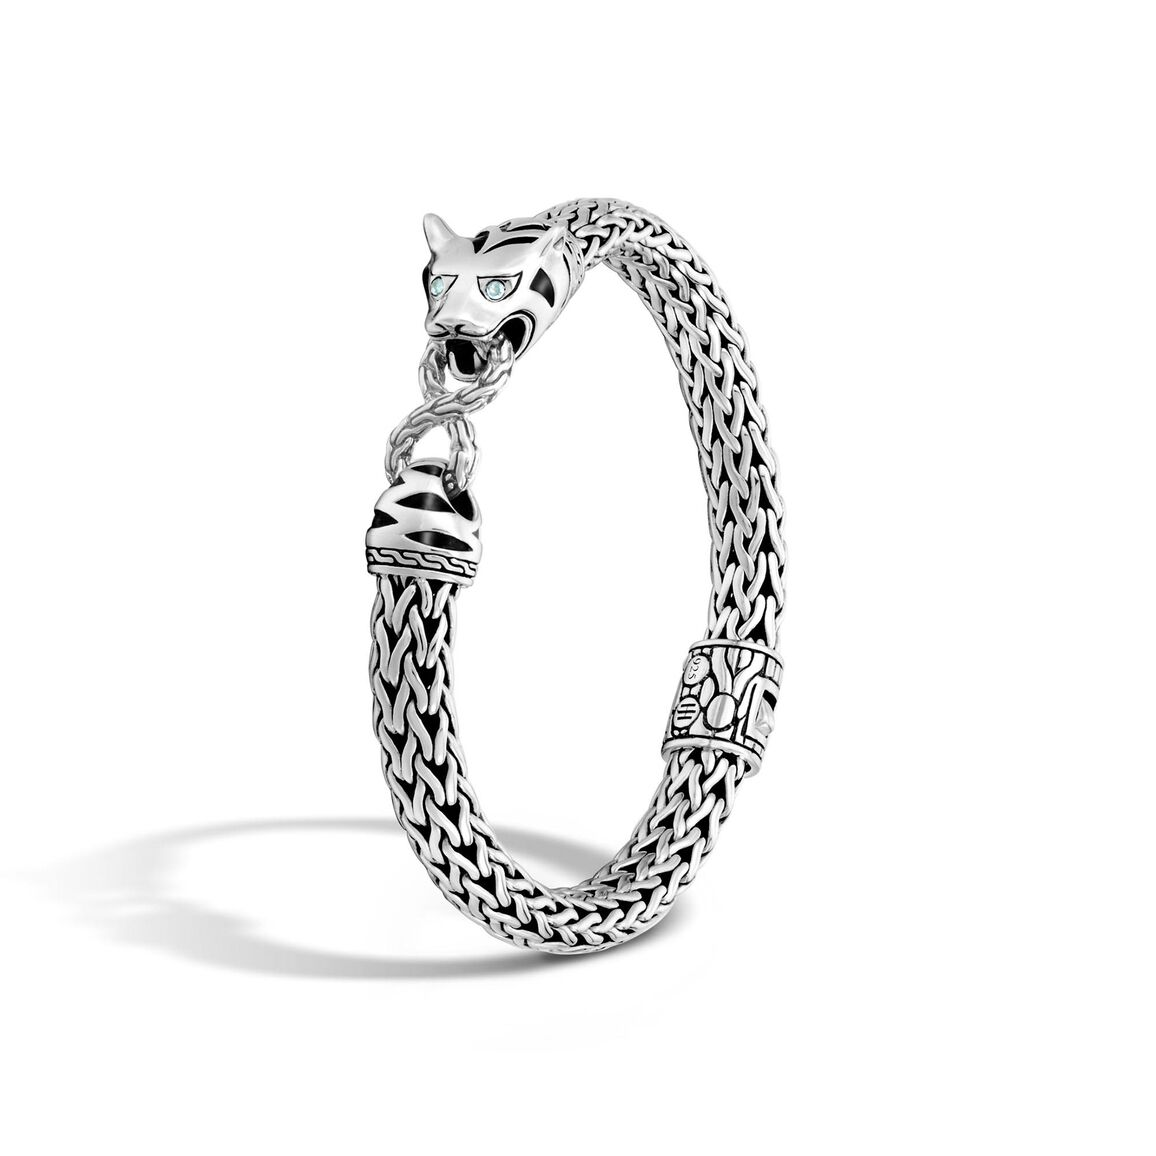 Legends Macan 7.5MM Station Bracelet in Silver